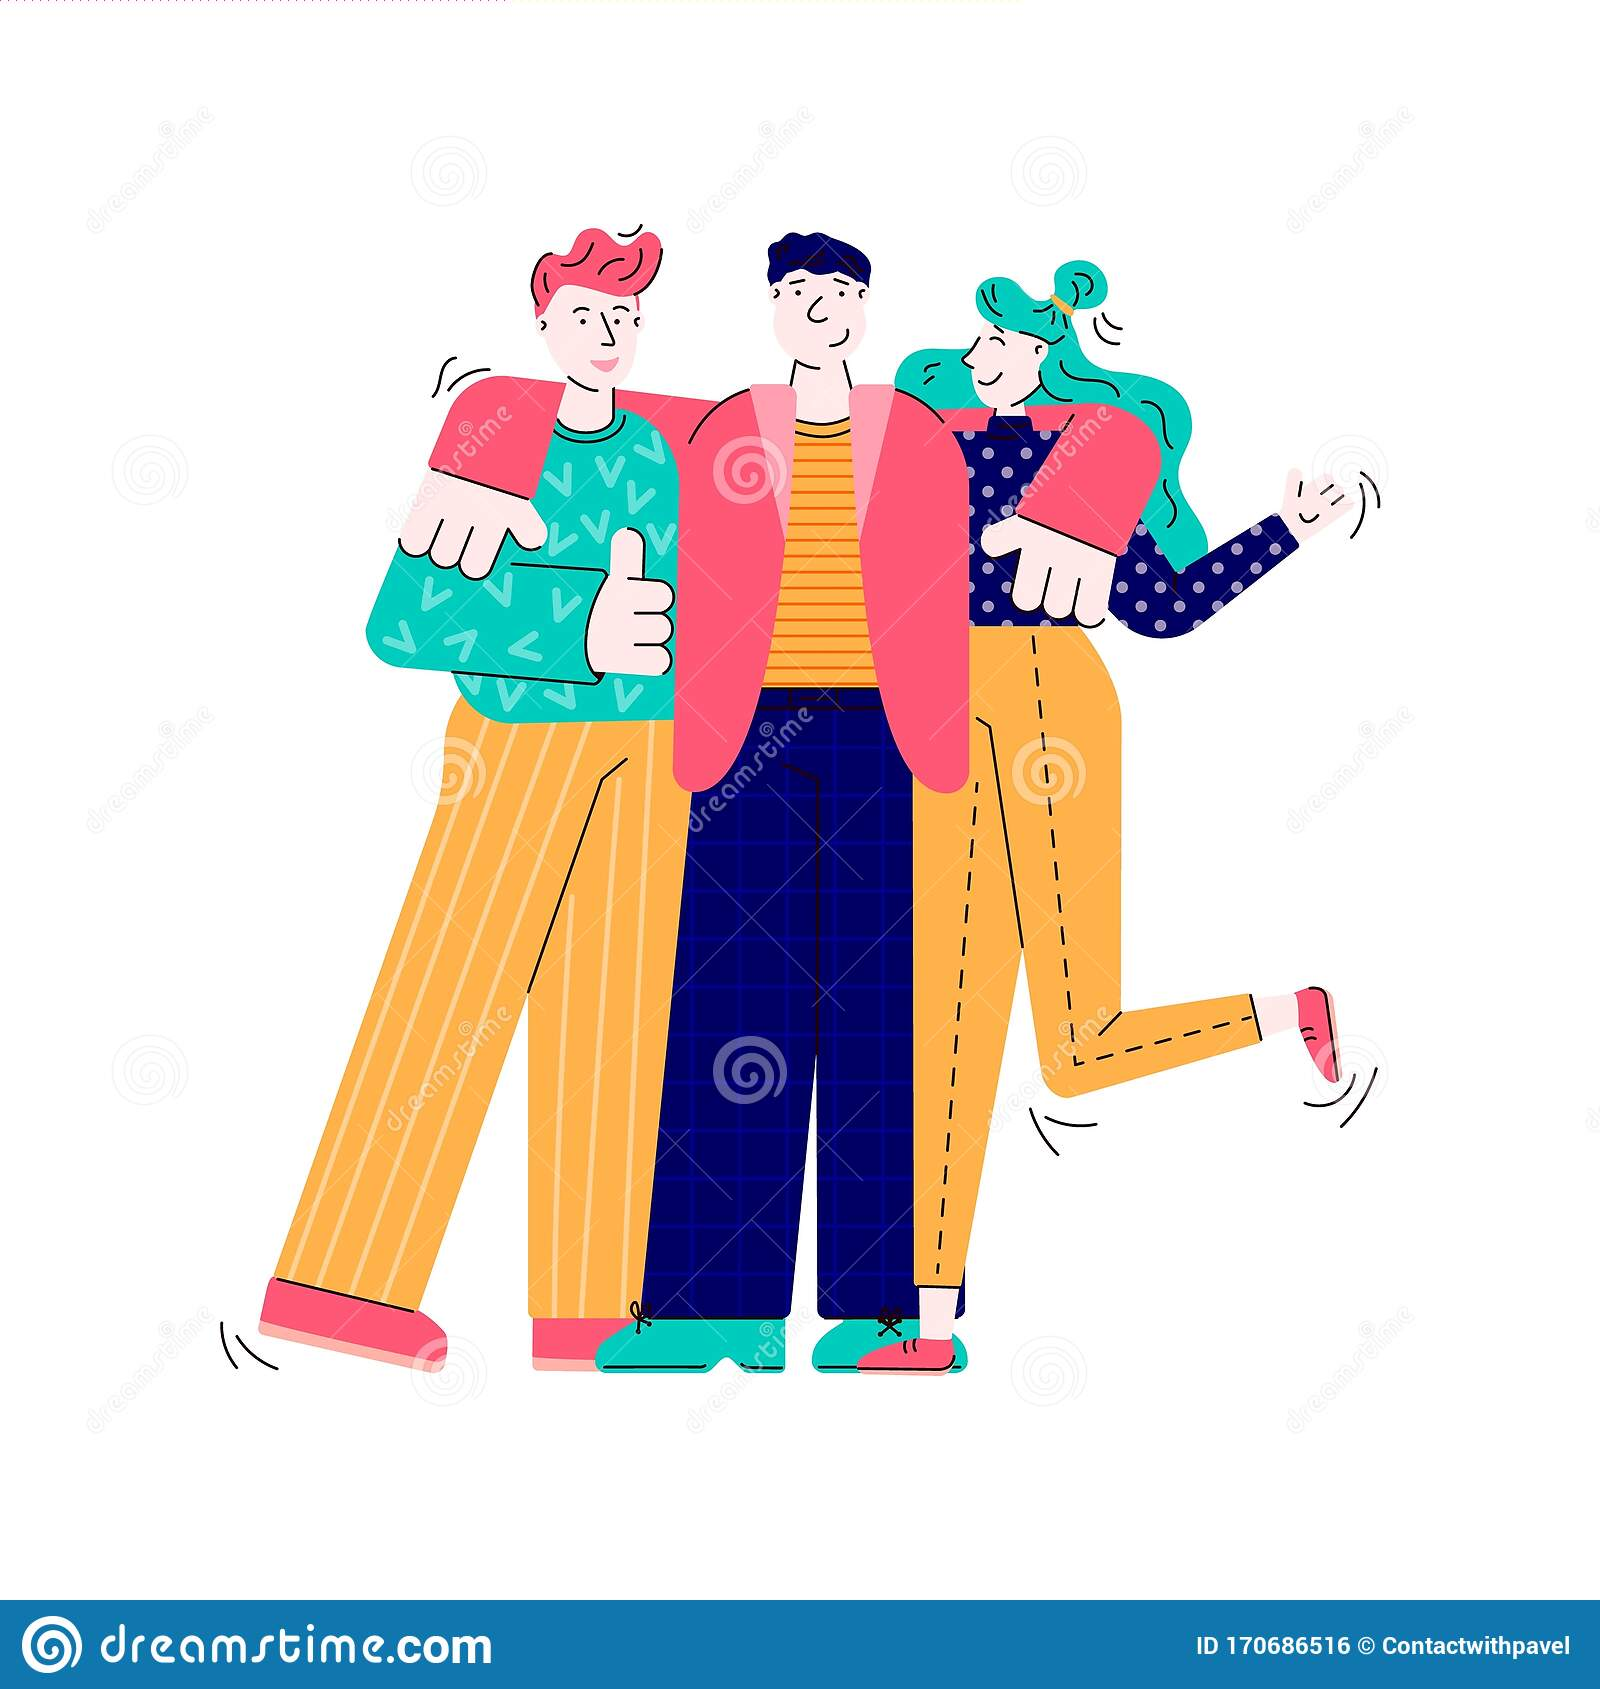 Three Friends Hugging Cartoon People Standing Together Sharing Friend Hug Stock Vector Illustration Of Best Male 170686516